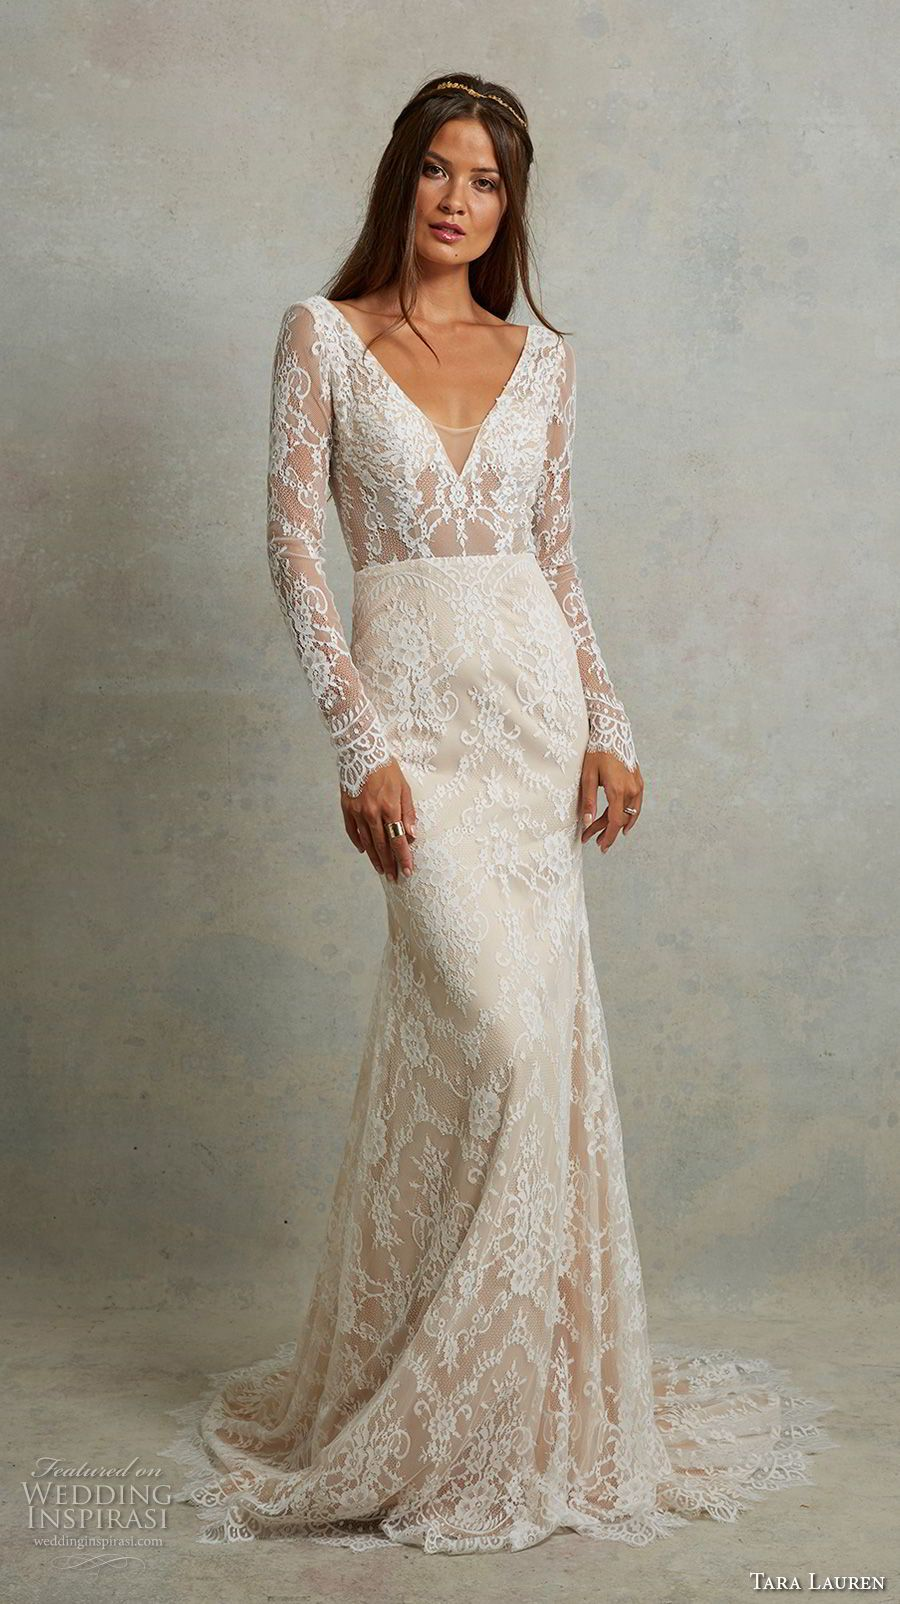 Tara lauren spring wedding dresses in miss meliss bridal